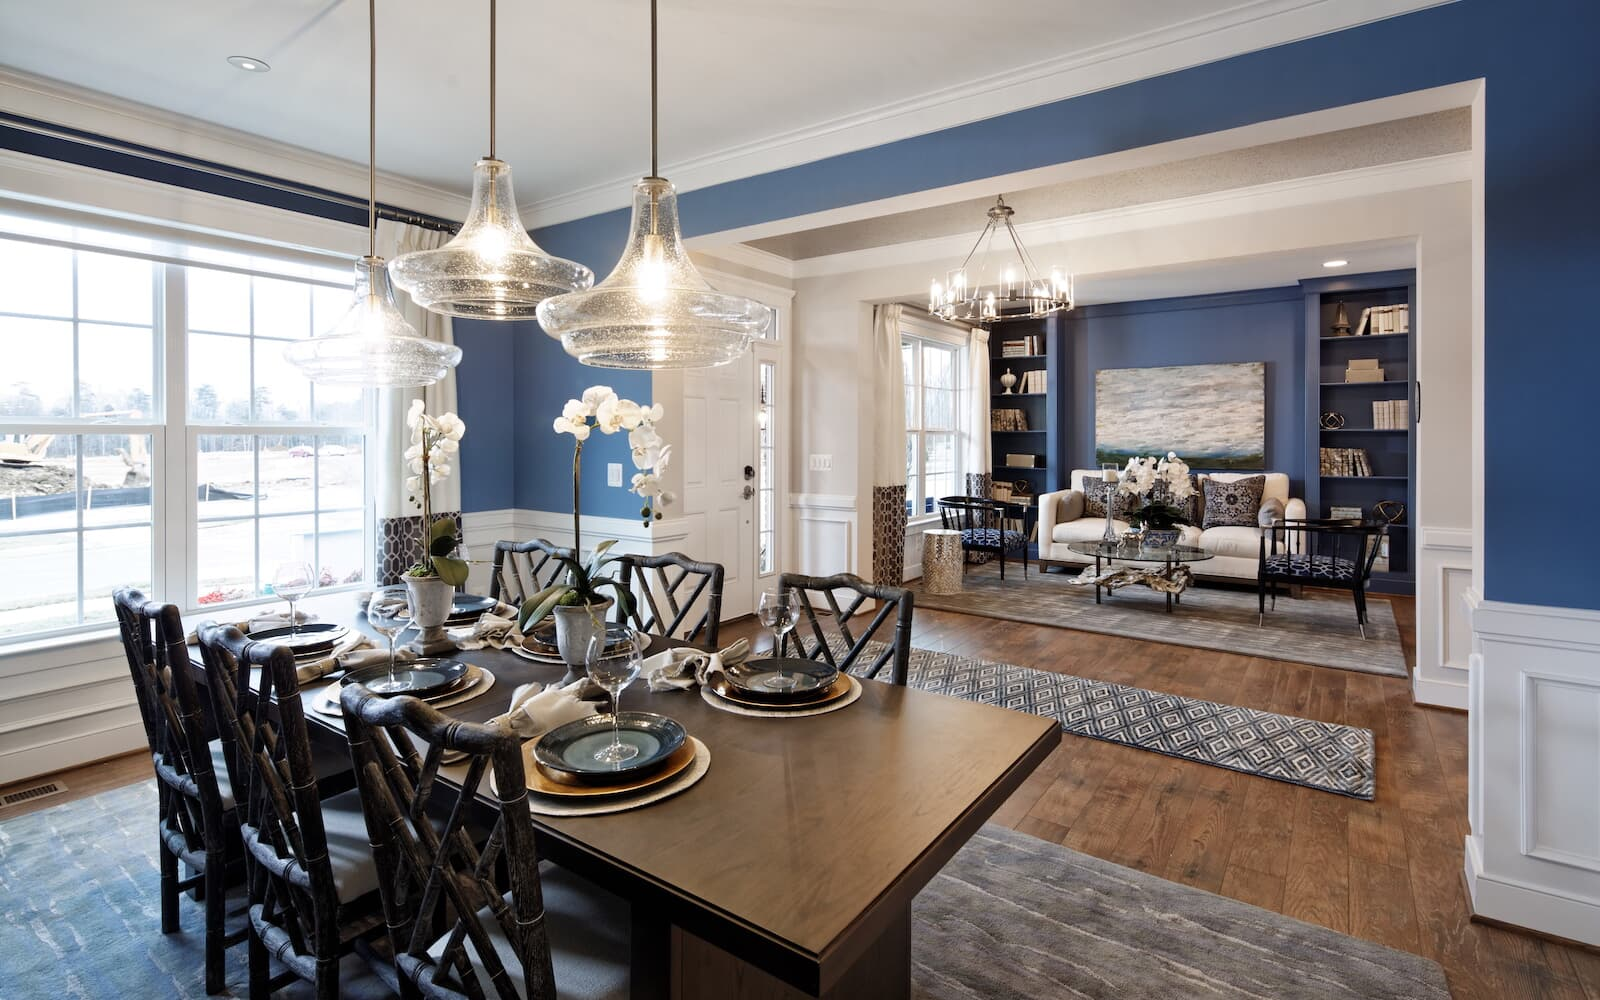 Kensington-dining-room2-single-family-home-bristow-va-avendale-brookfield-residential